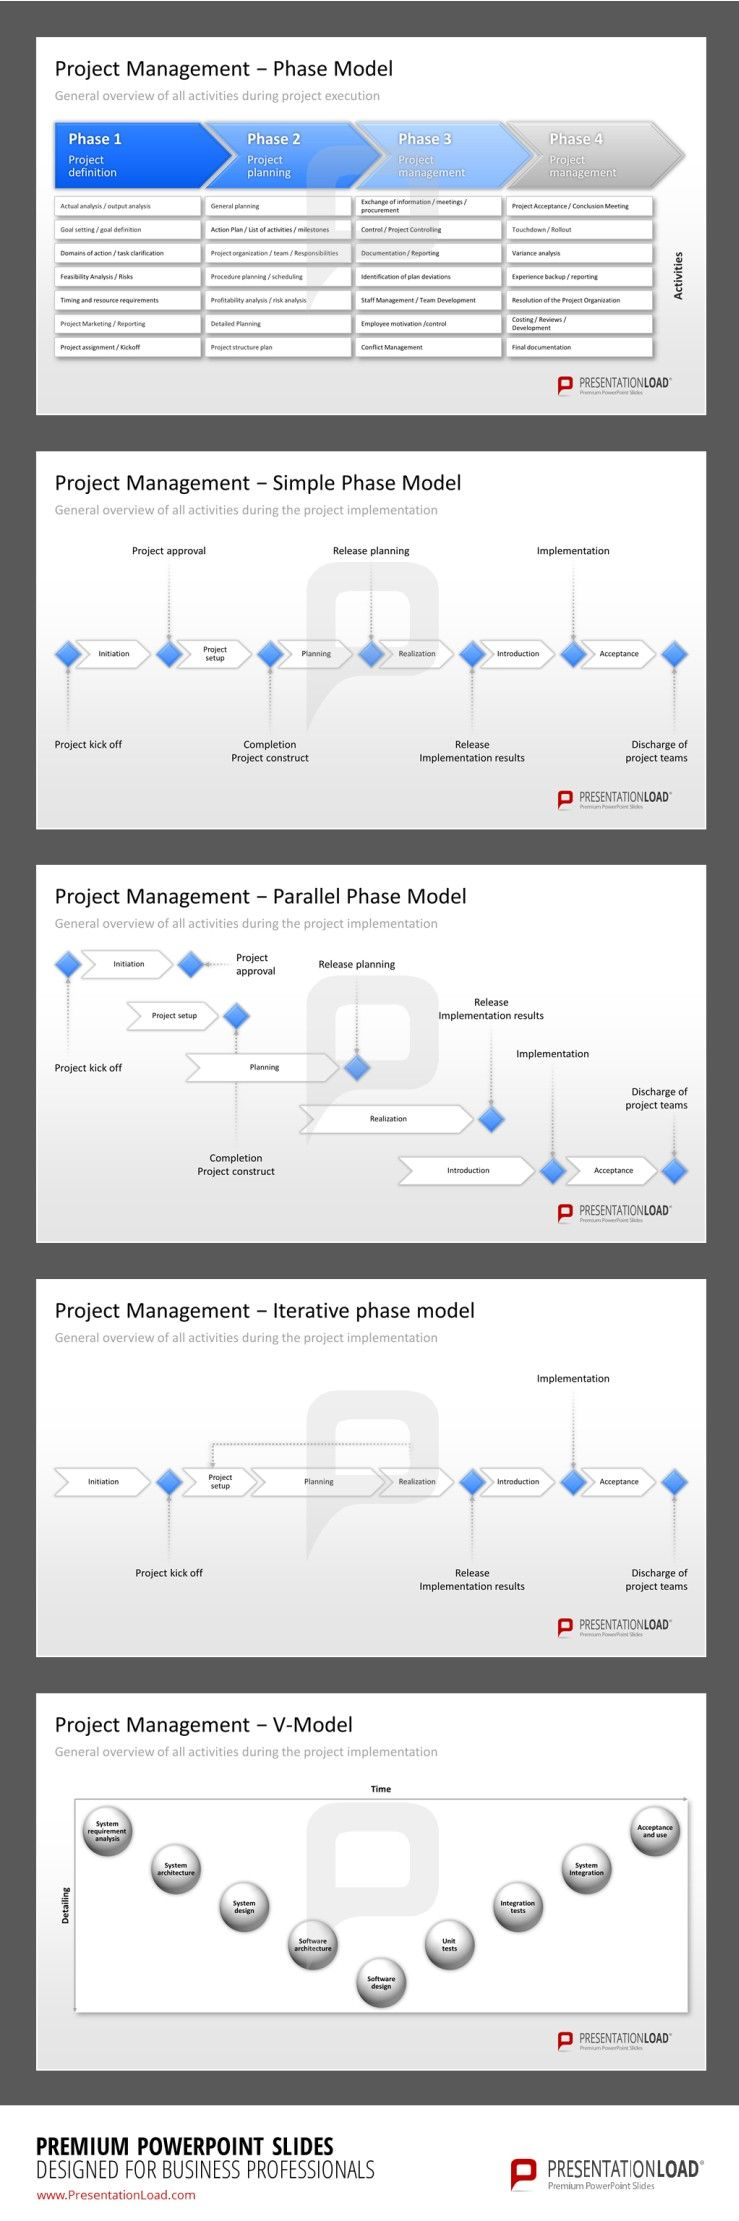 use the project management powerpoint templates to plan and